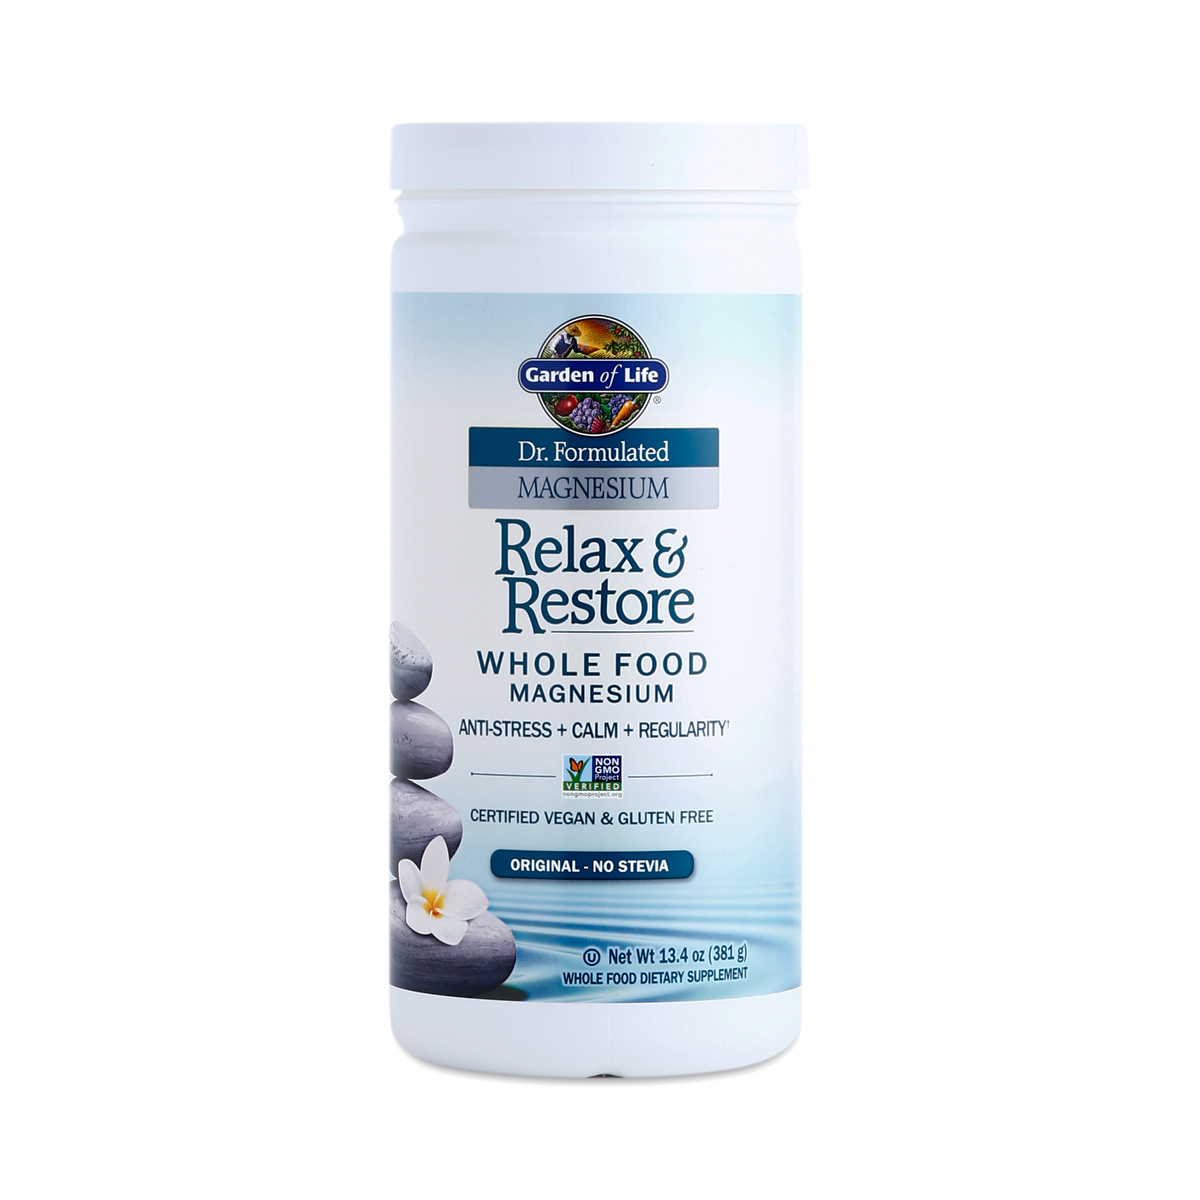 Magnesium relax restore supplement drink thrive market for Garden of life relax and restore